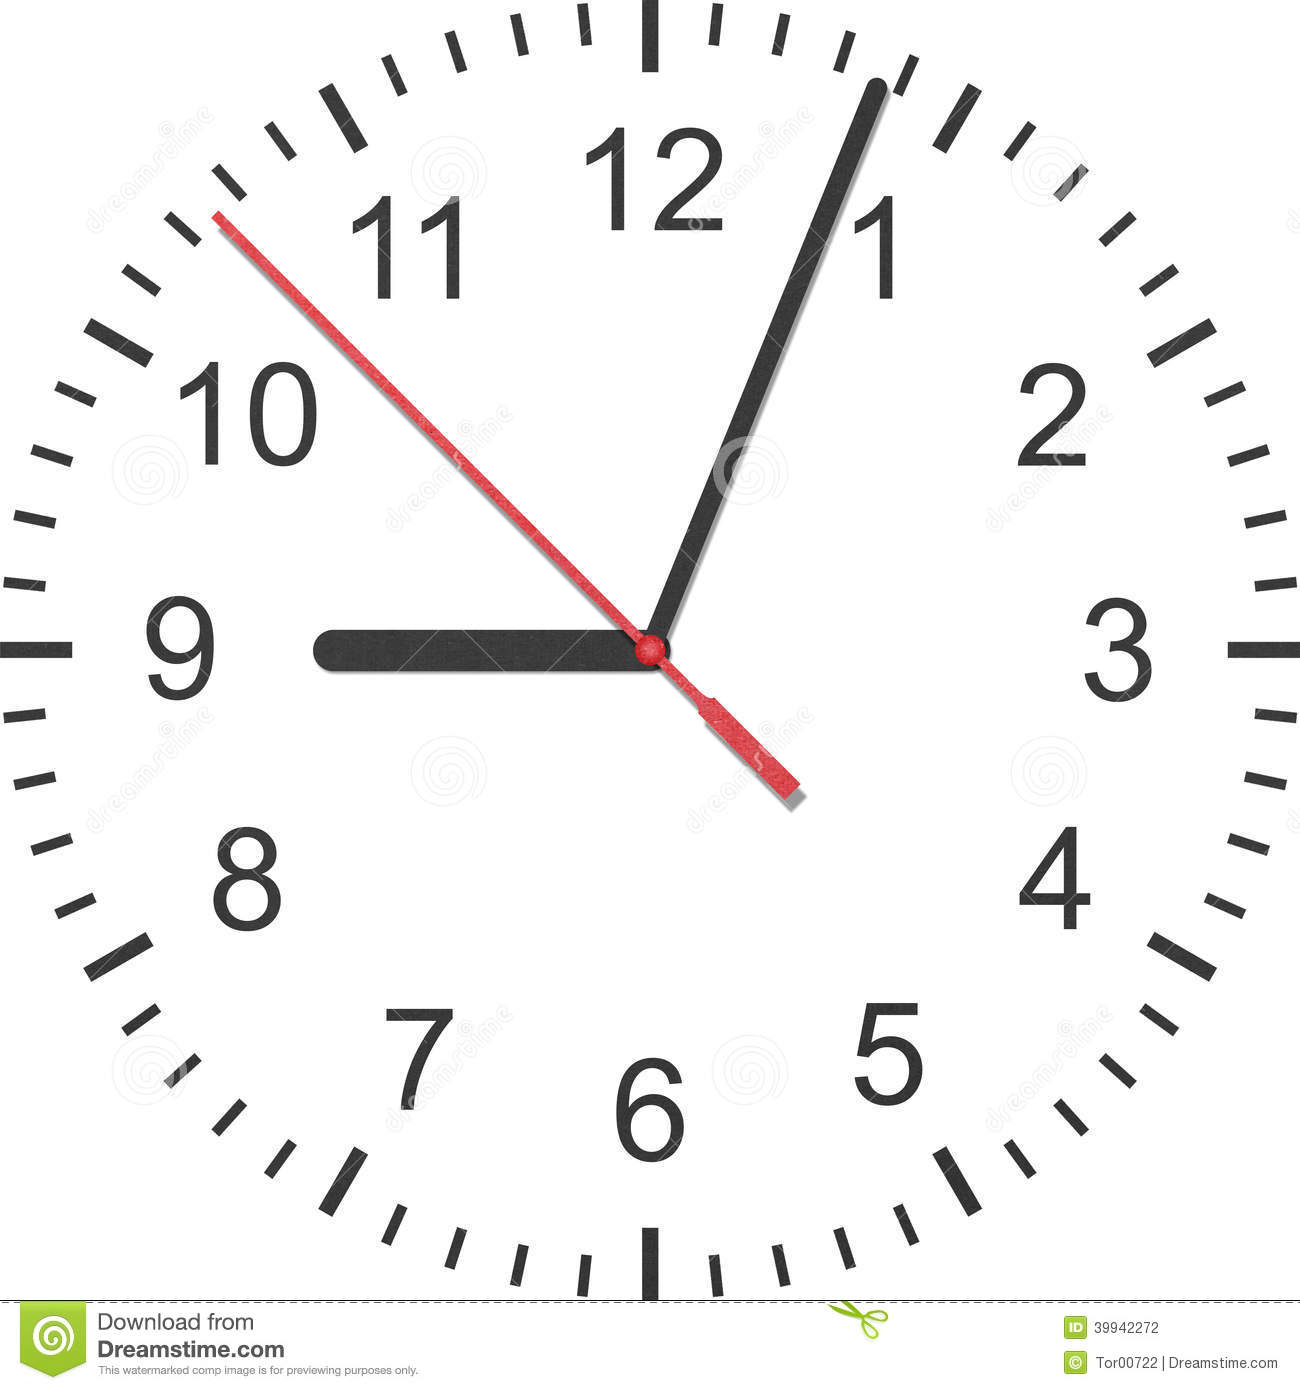 Paper Cut Of Time Clock, Watch Is Number With Hour Hand And Minute